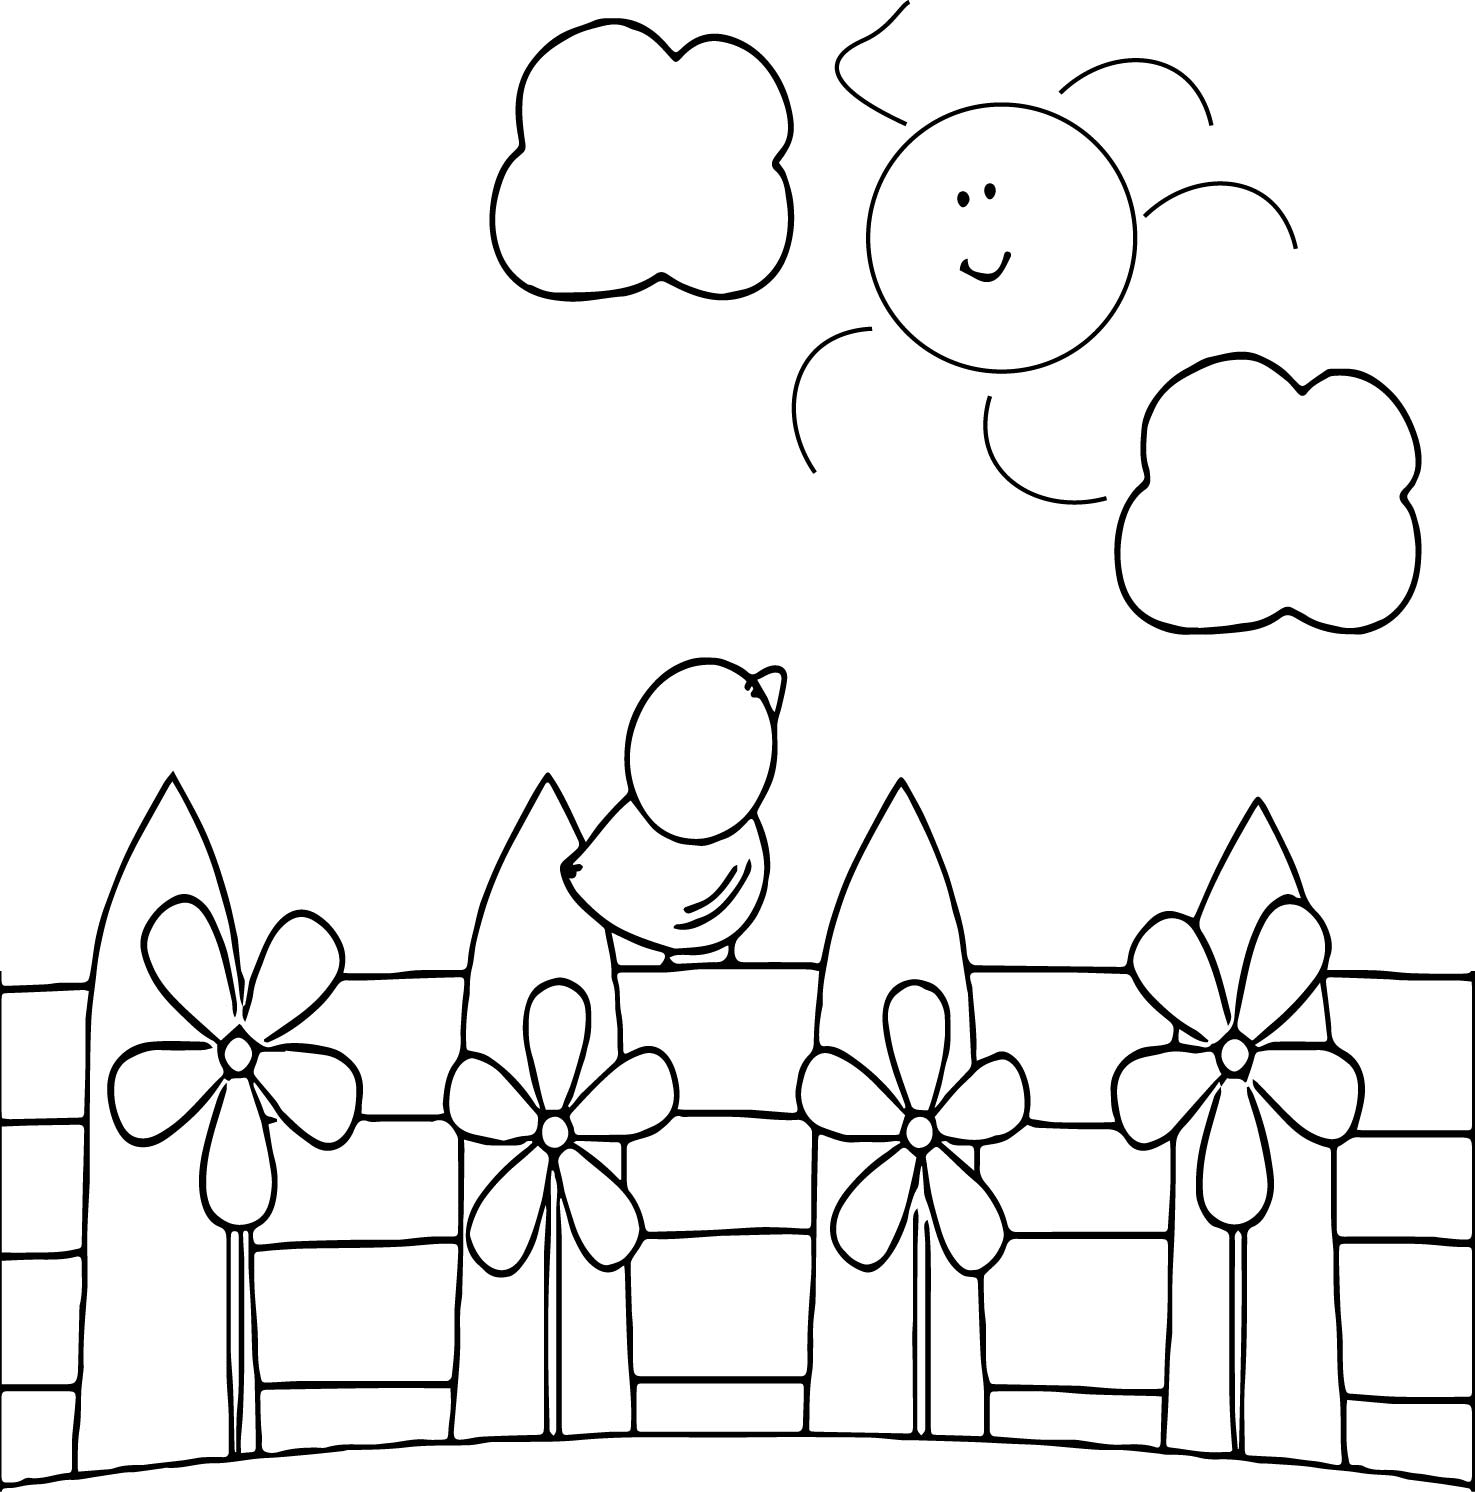 Spring Morning Coloring Page | Wecoloringpage.com